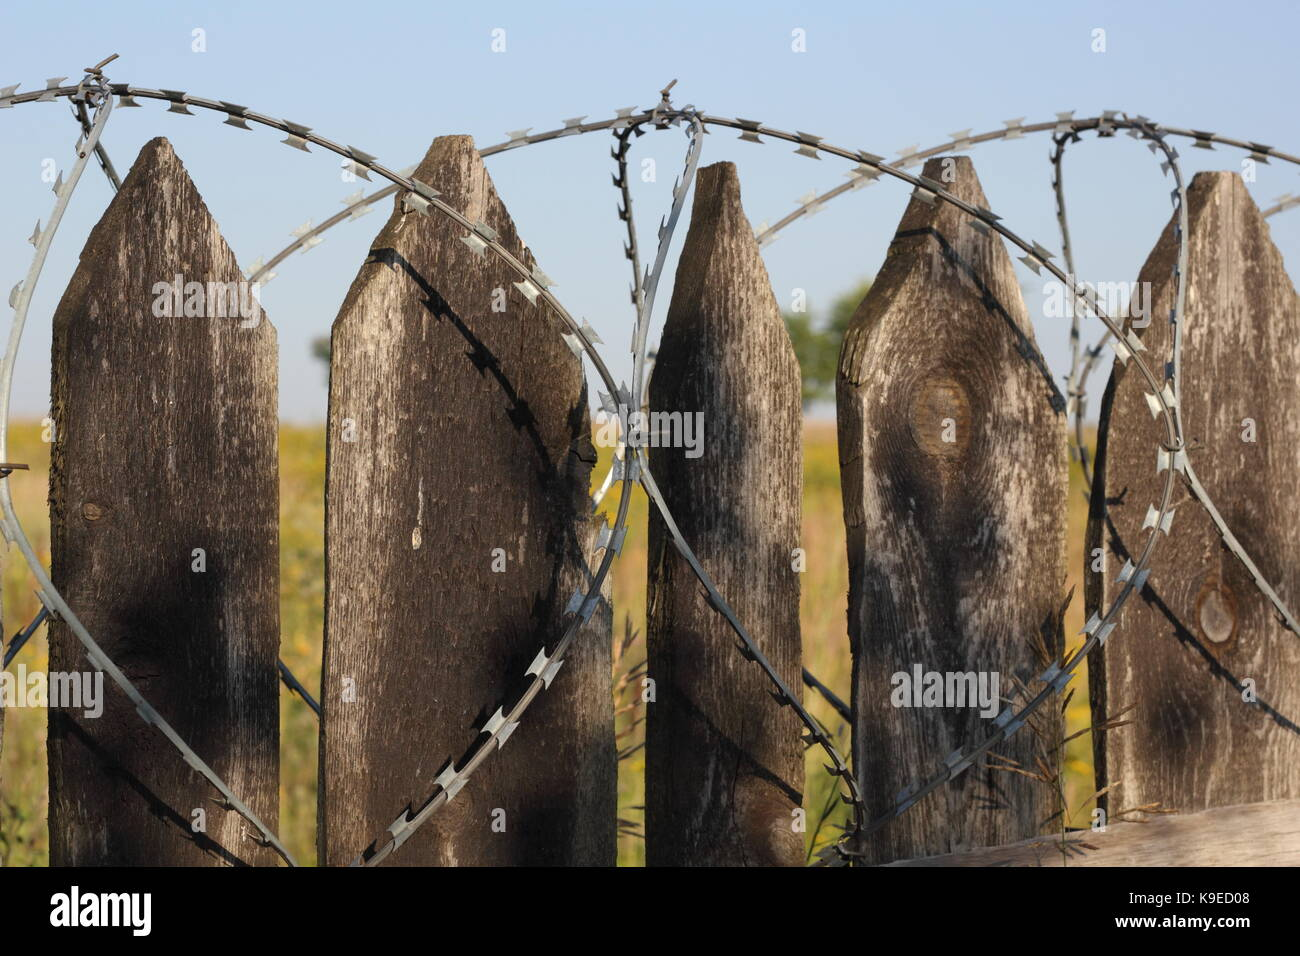 Old wooden fence with barbed wire closeup photo - Stock Image